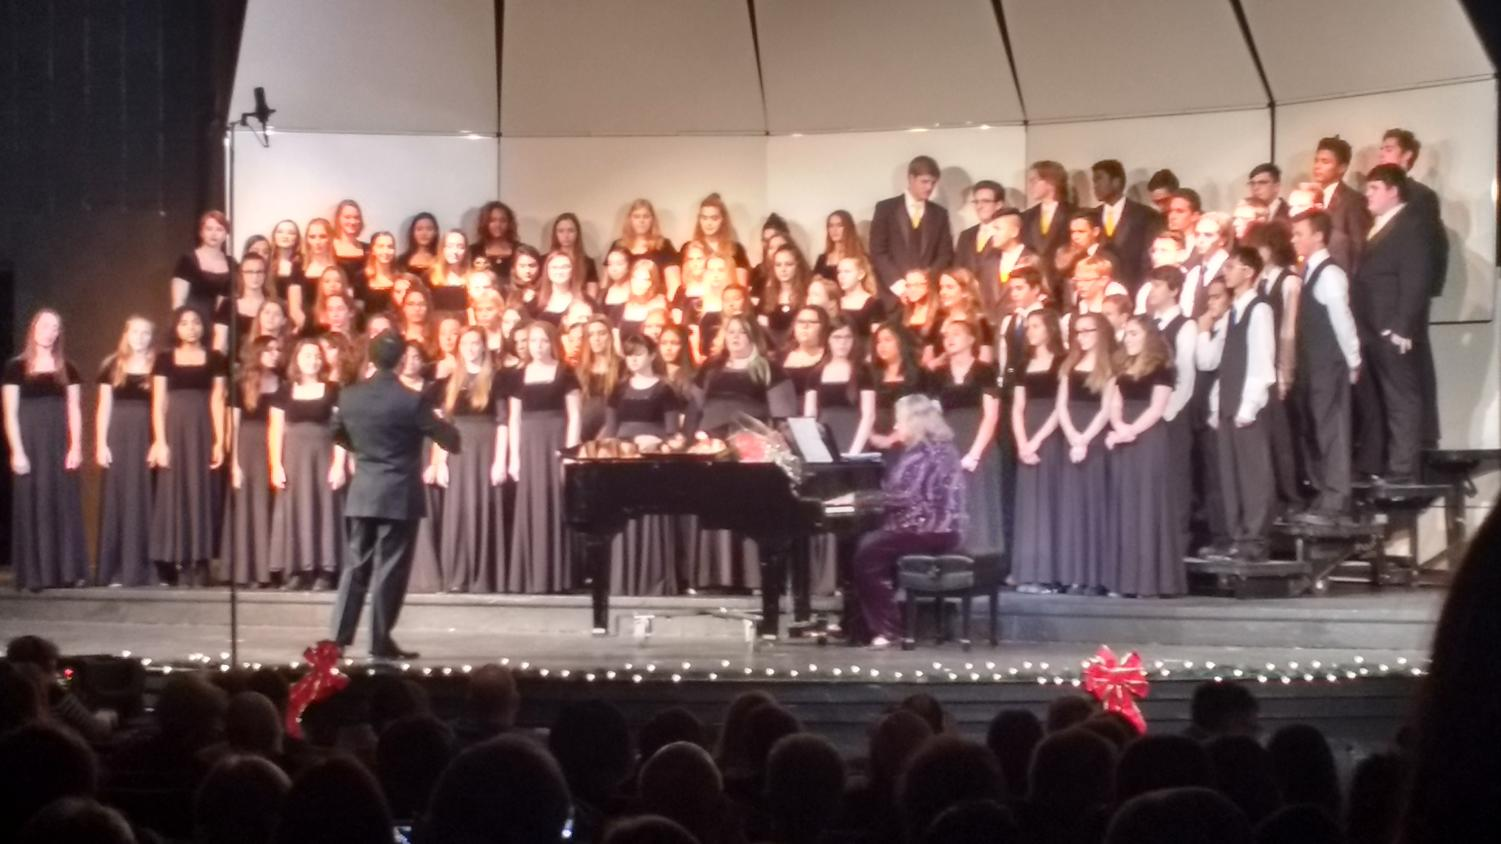 All choirs combined performing a final piece together.